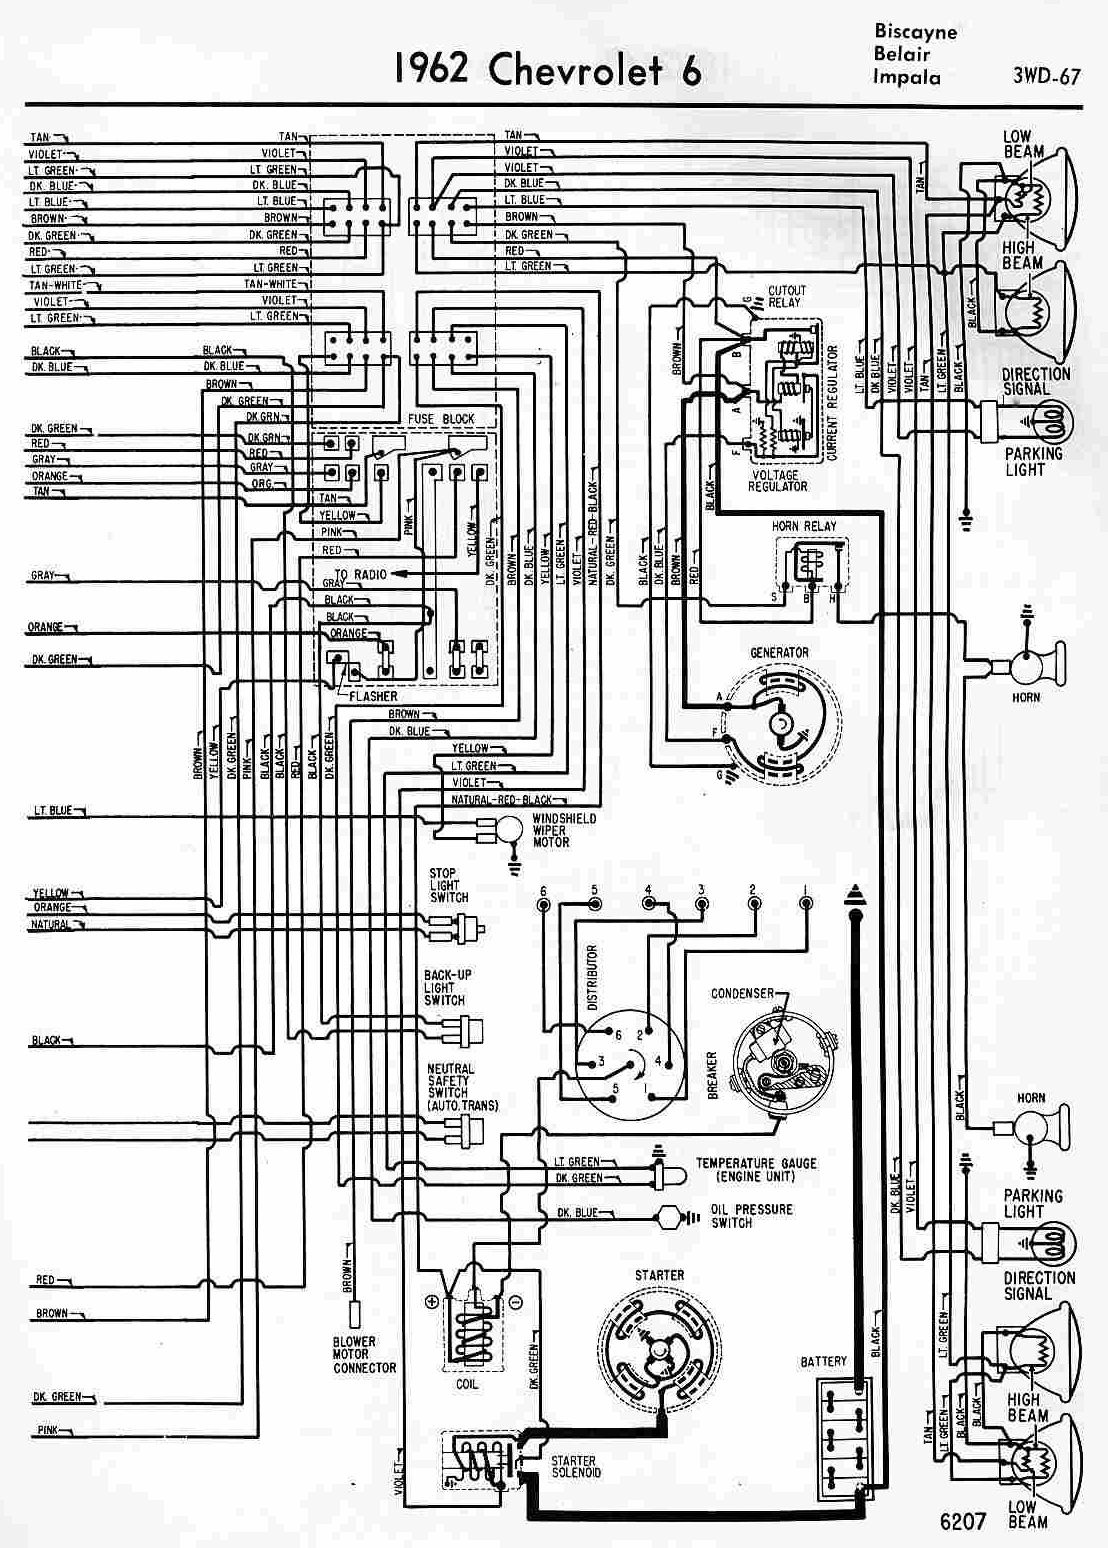 1972 chevrolet impala wiring diagram wiring diagram general1972 chevy impala wiring harness wiring diagram h8 2003 chevy impala wiring diagram 1970 impala wiring